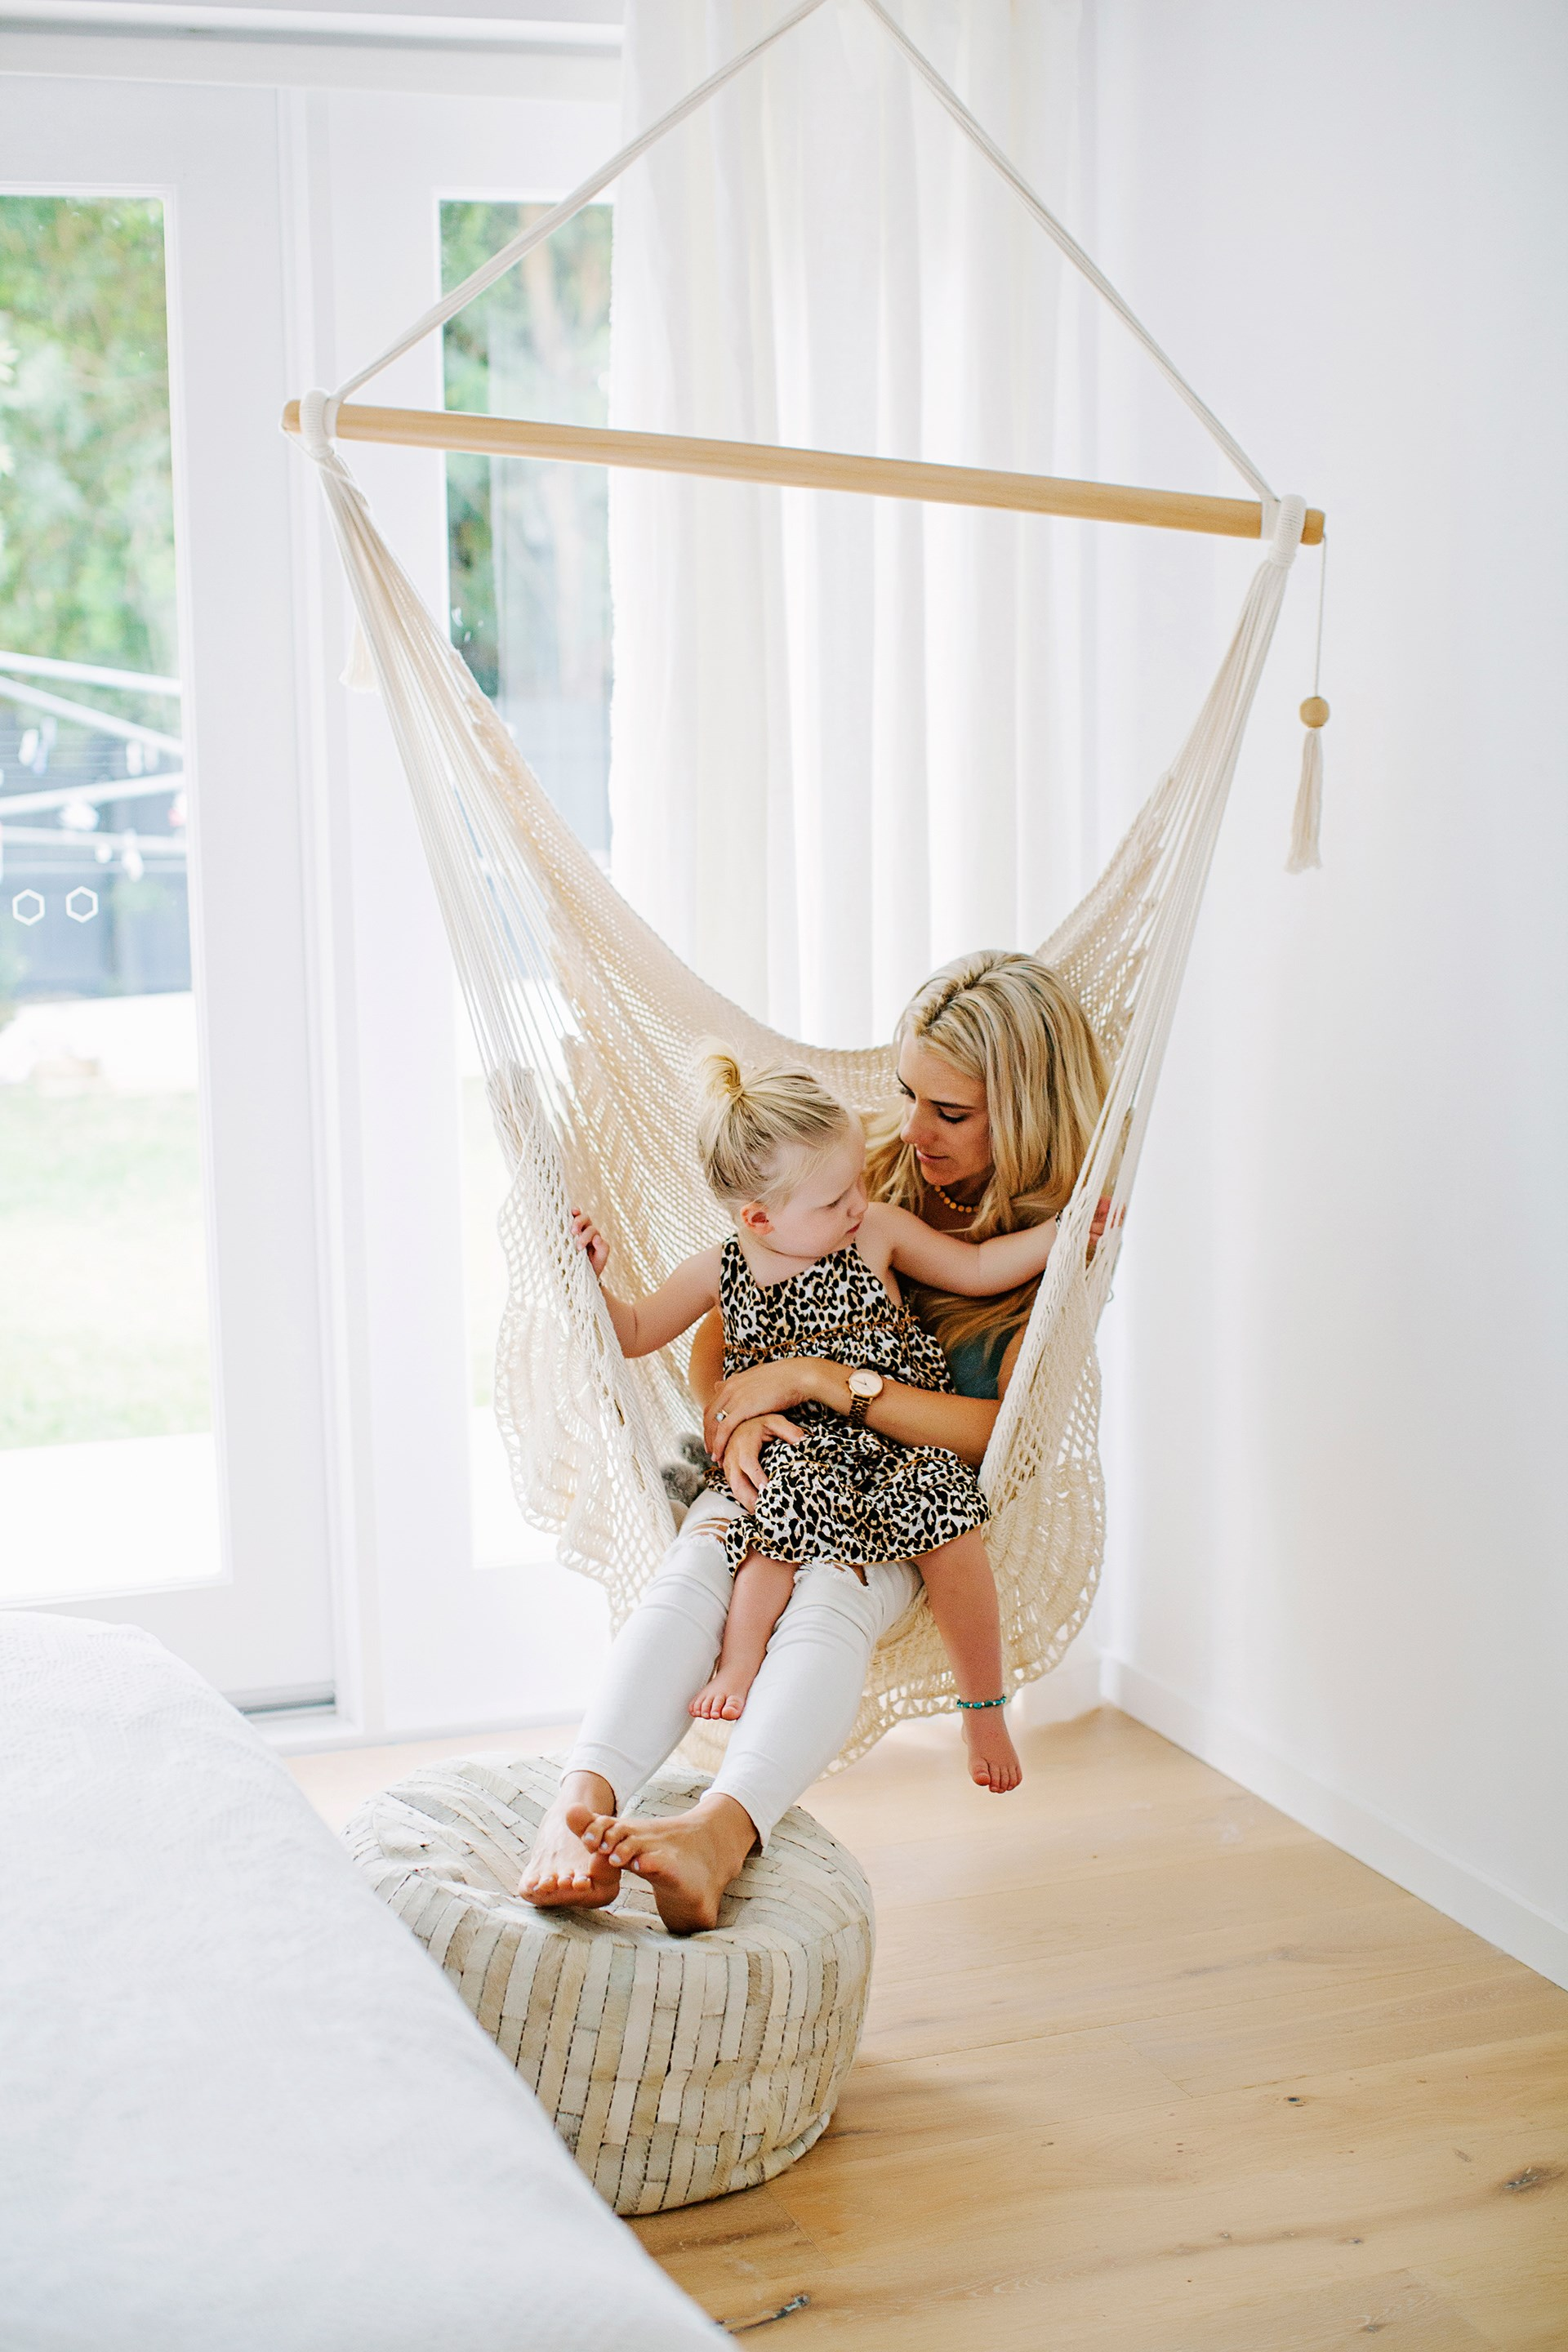 "A swing chair is purpose-built for relaxation, and is just the place to cuddle up with a little one (or a book). Inexpensive to buy and easy to hang from a timber beam or verandah rafter, it could be your new go-to spot for time out. This swing chair hangs in a corner of the main bedroom. See more of this [Sunshine Coast home](http://www.homestolove.com.au/sarah-and-lukes-shining-star-on-the-sunshine-coast-2647/|target=""_blank""). Photo: Josette Van Zutphen 